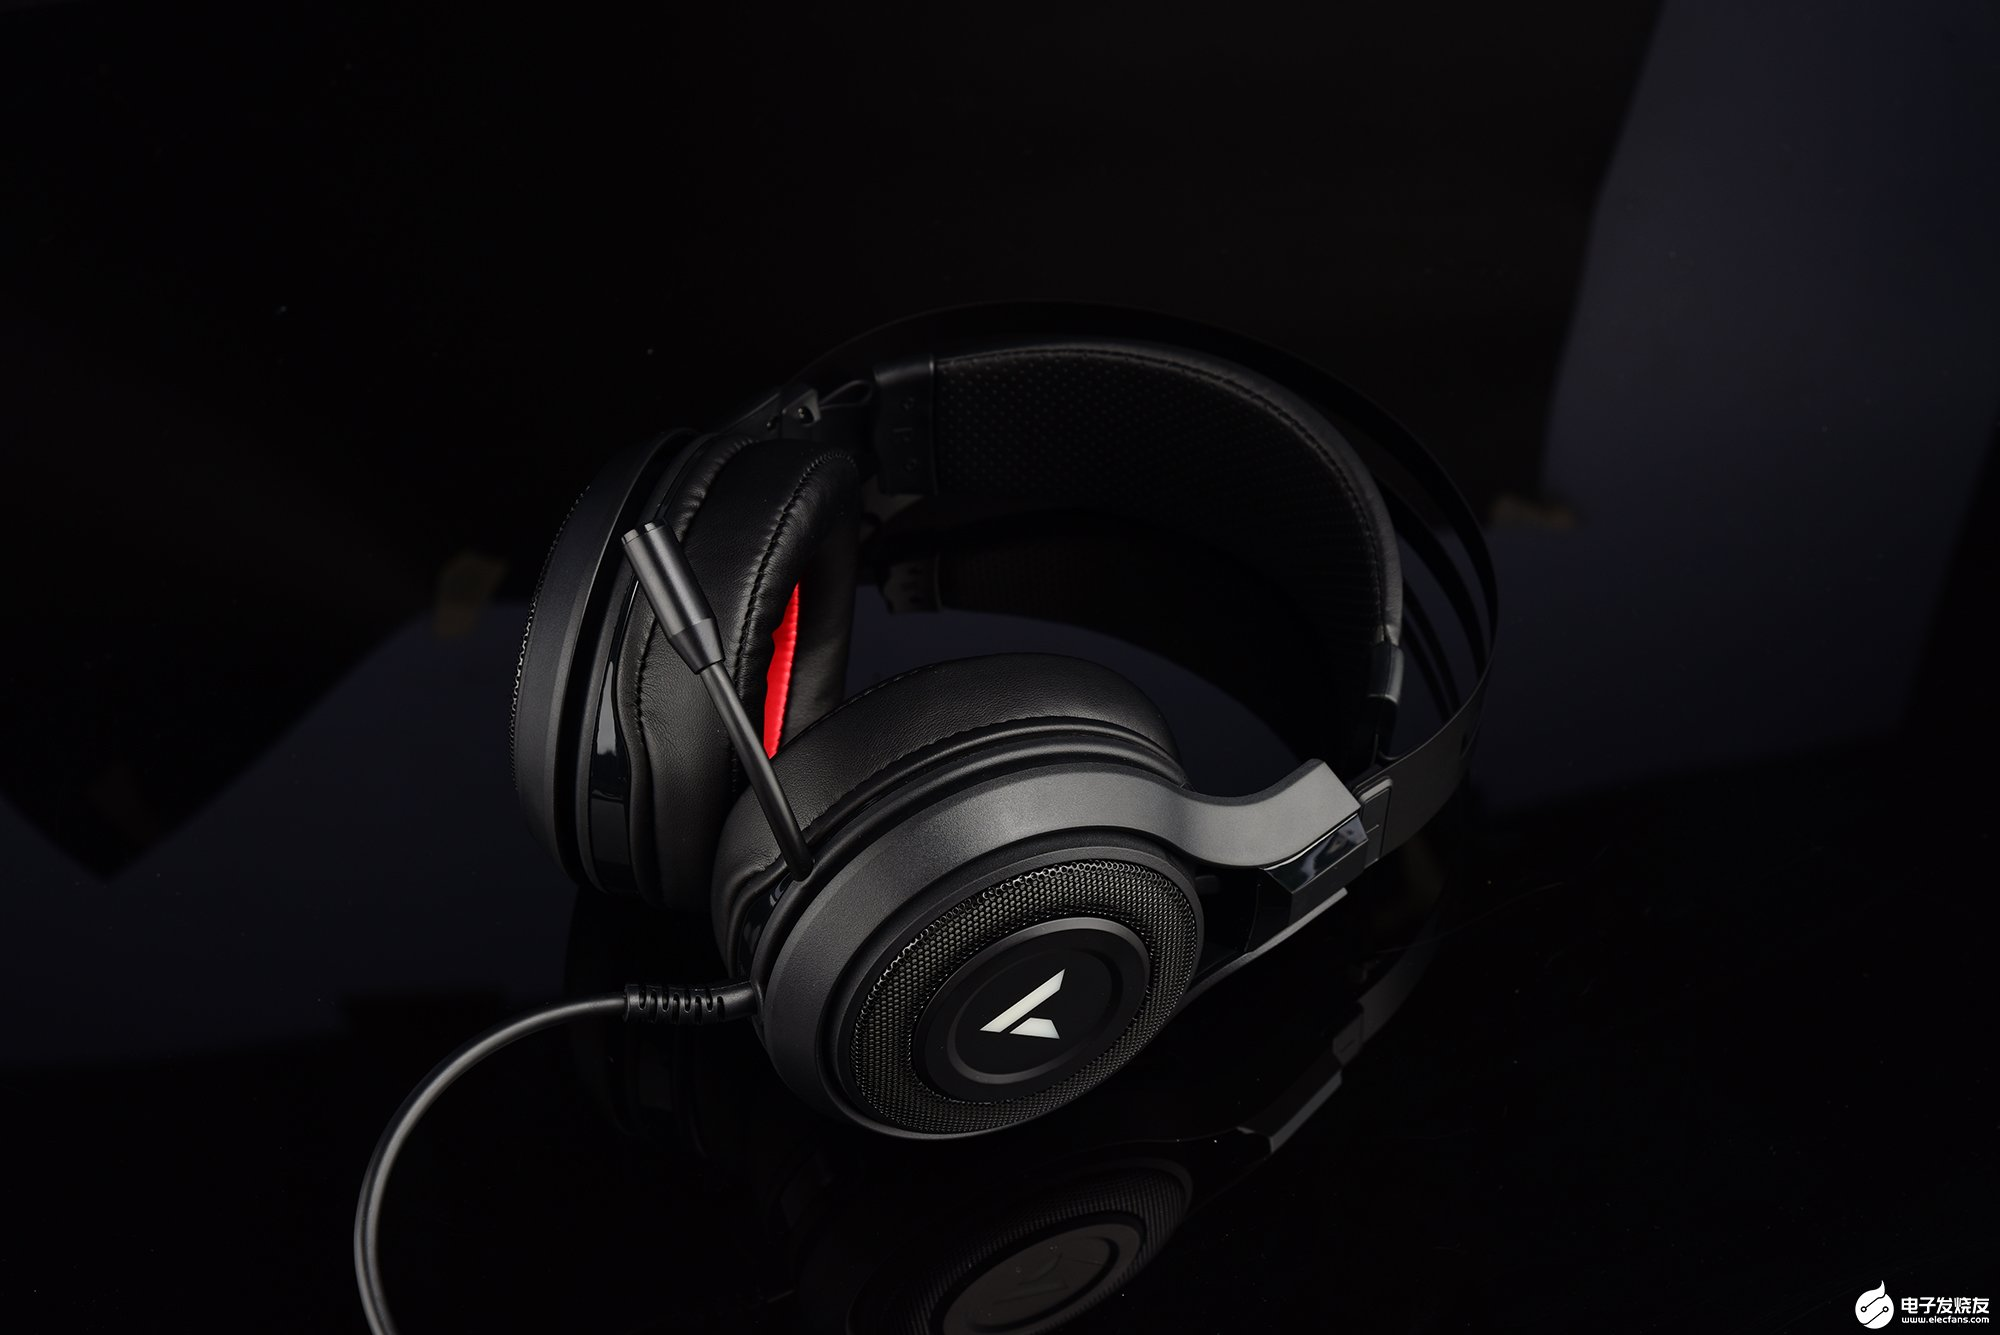 Rebecca vh520 game headphone evaluation combined with the price is very cost-effective